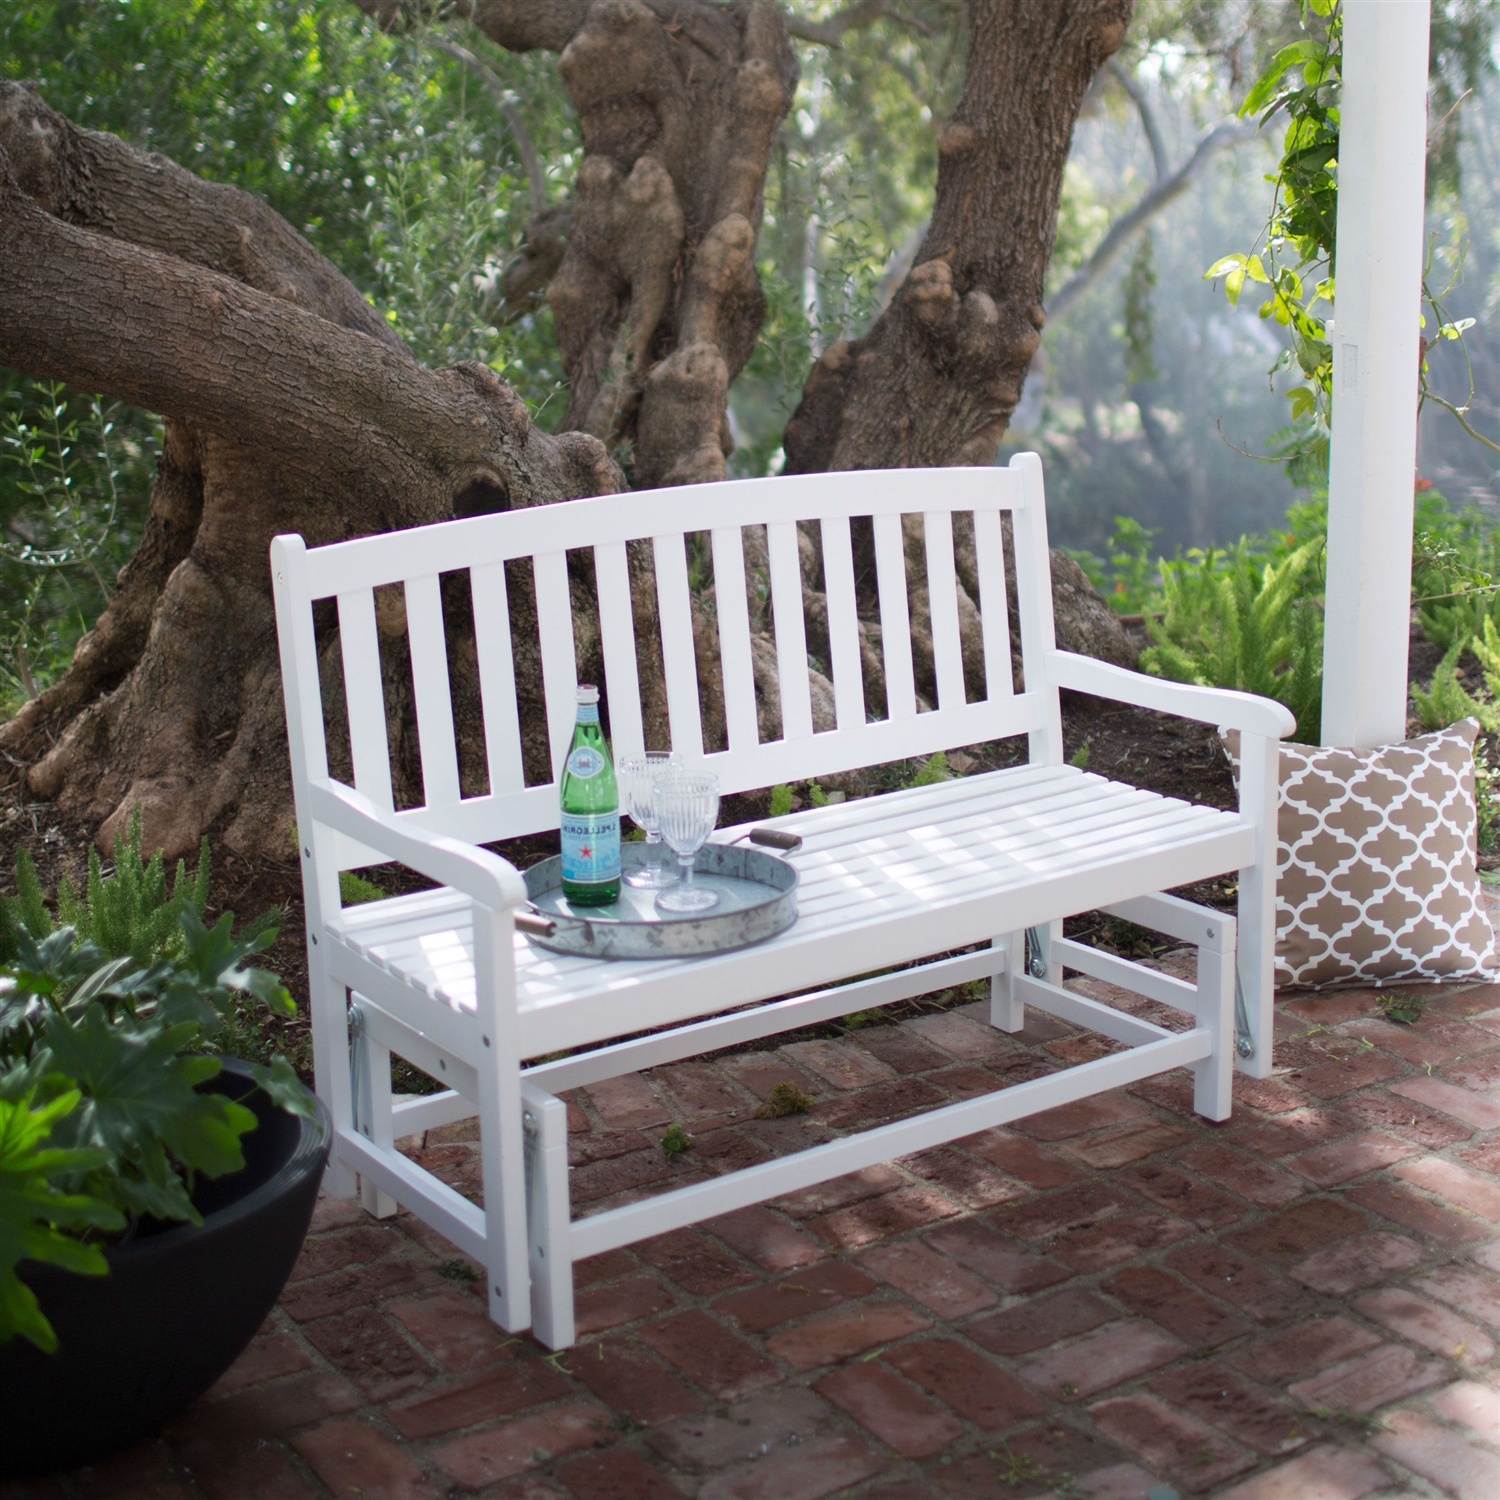 4 Ft Outdoor Patio Glider Chair Loveseat Bench In White Wood Finish